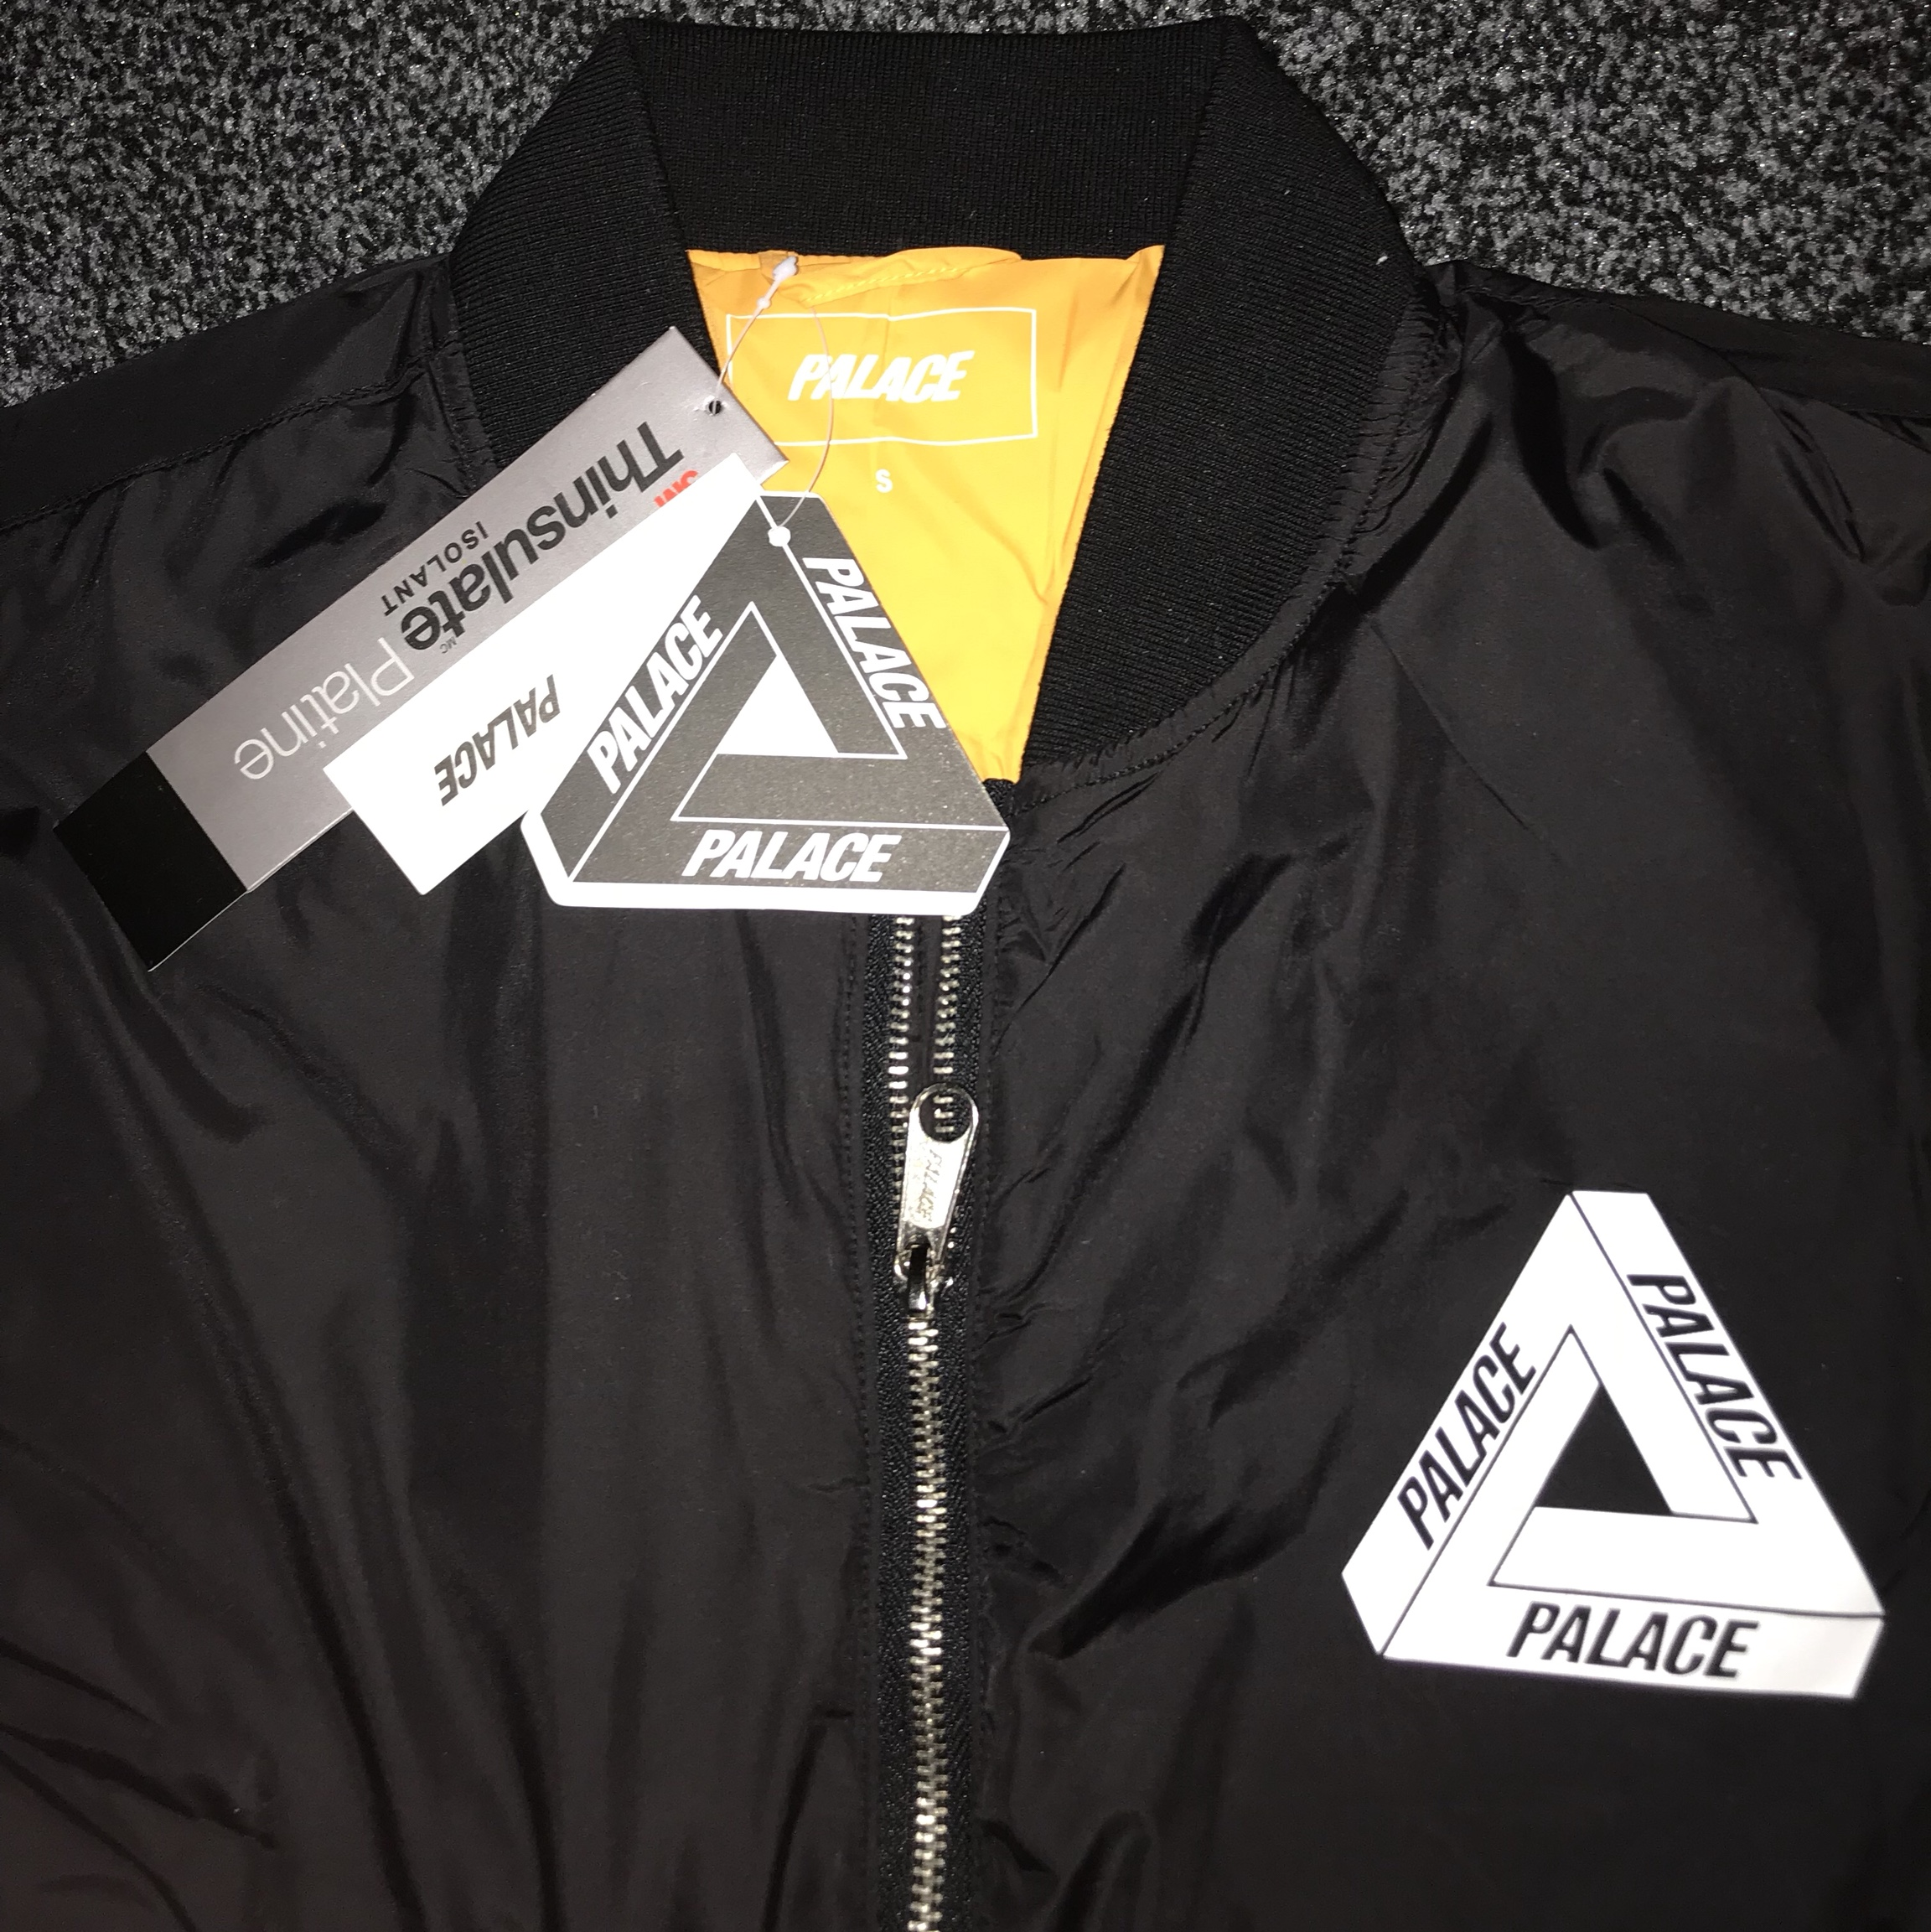 1092d1387 PALACE THINSULATE BOMBER JACKET IN BLACK PALACE MA1... - Depop